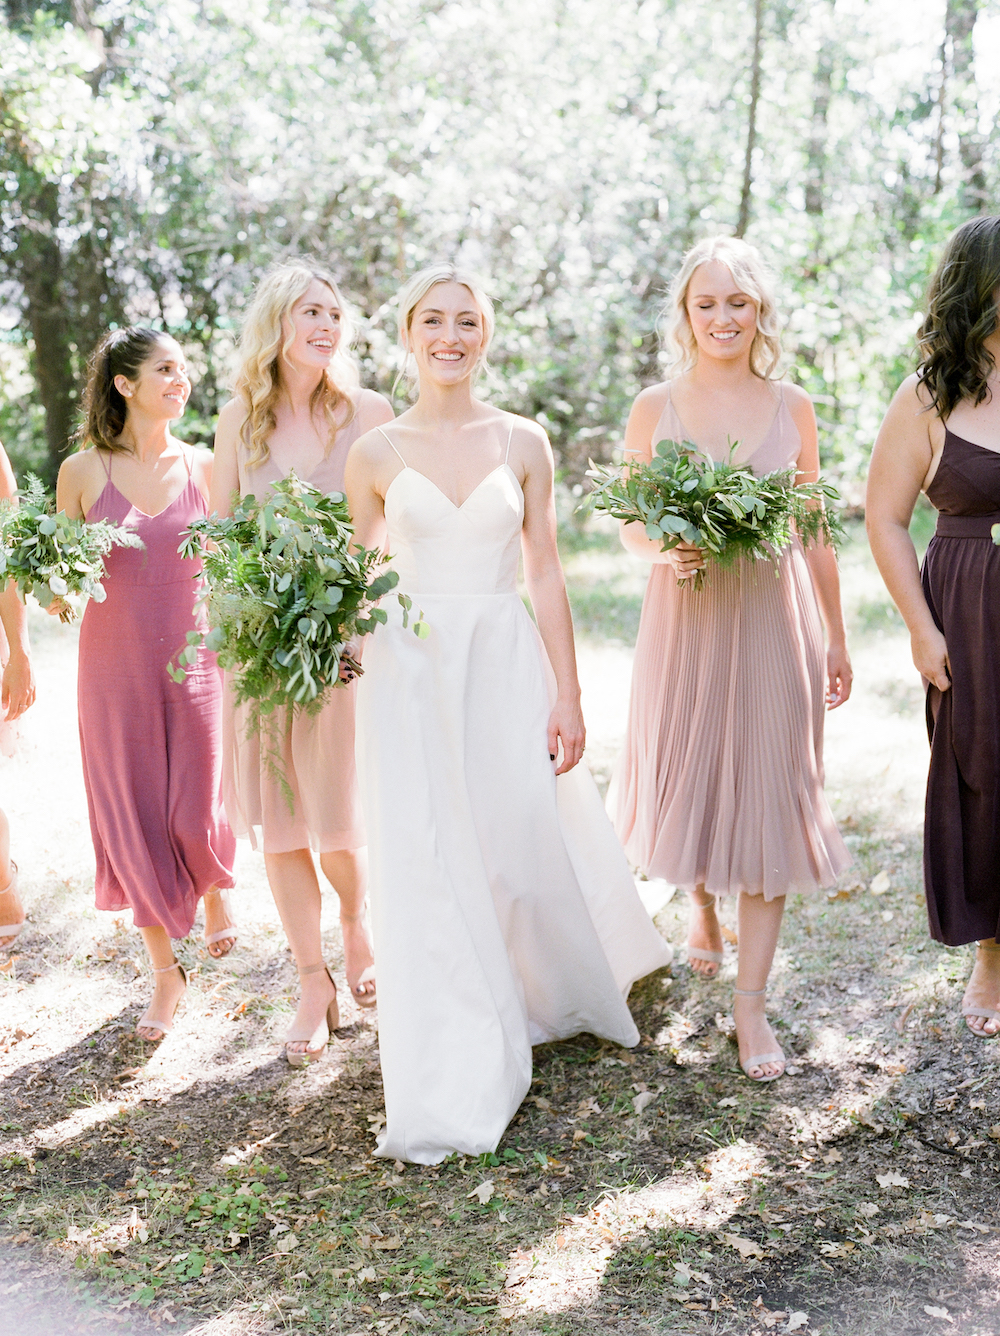 Greenery Bridesmaid Bouquets - Weddings in Winnipeg